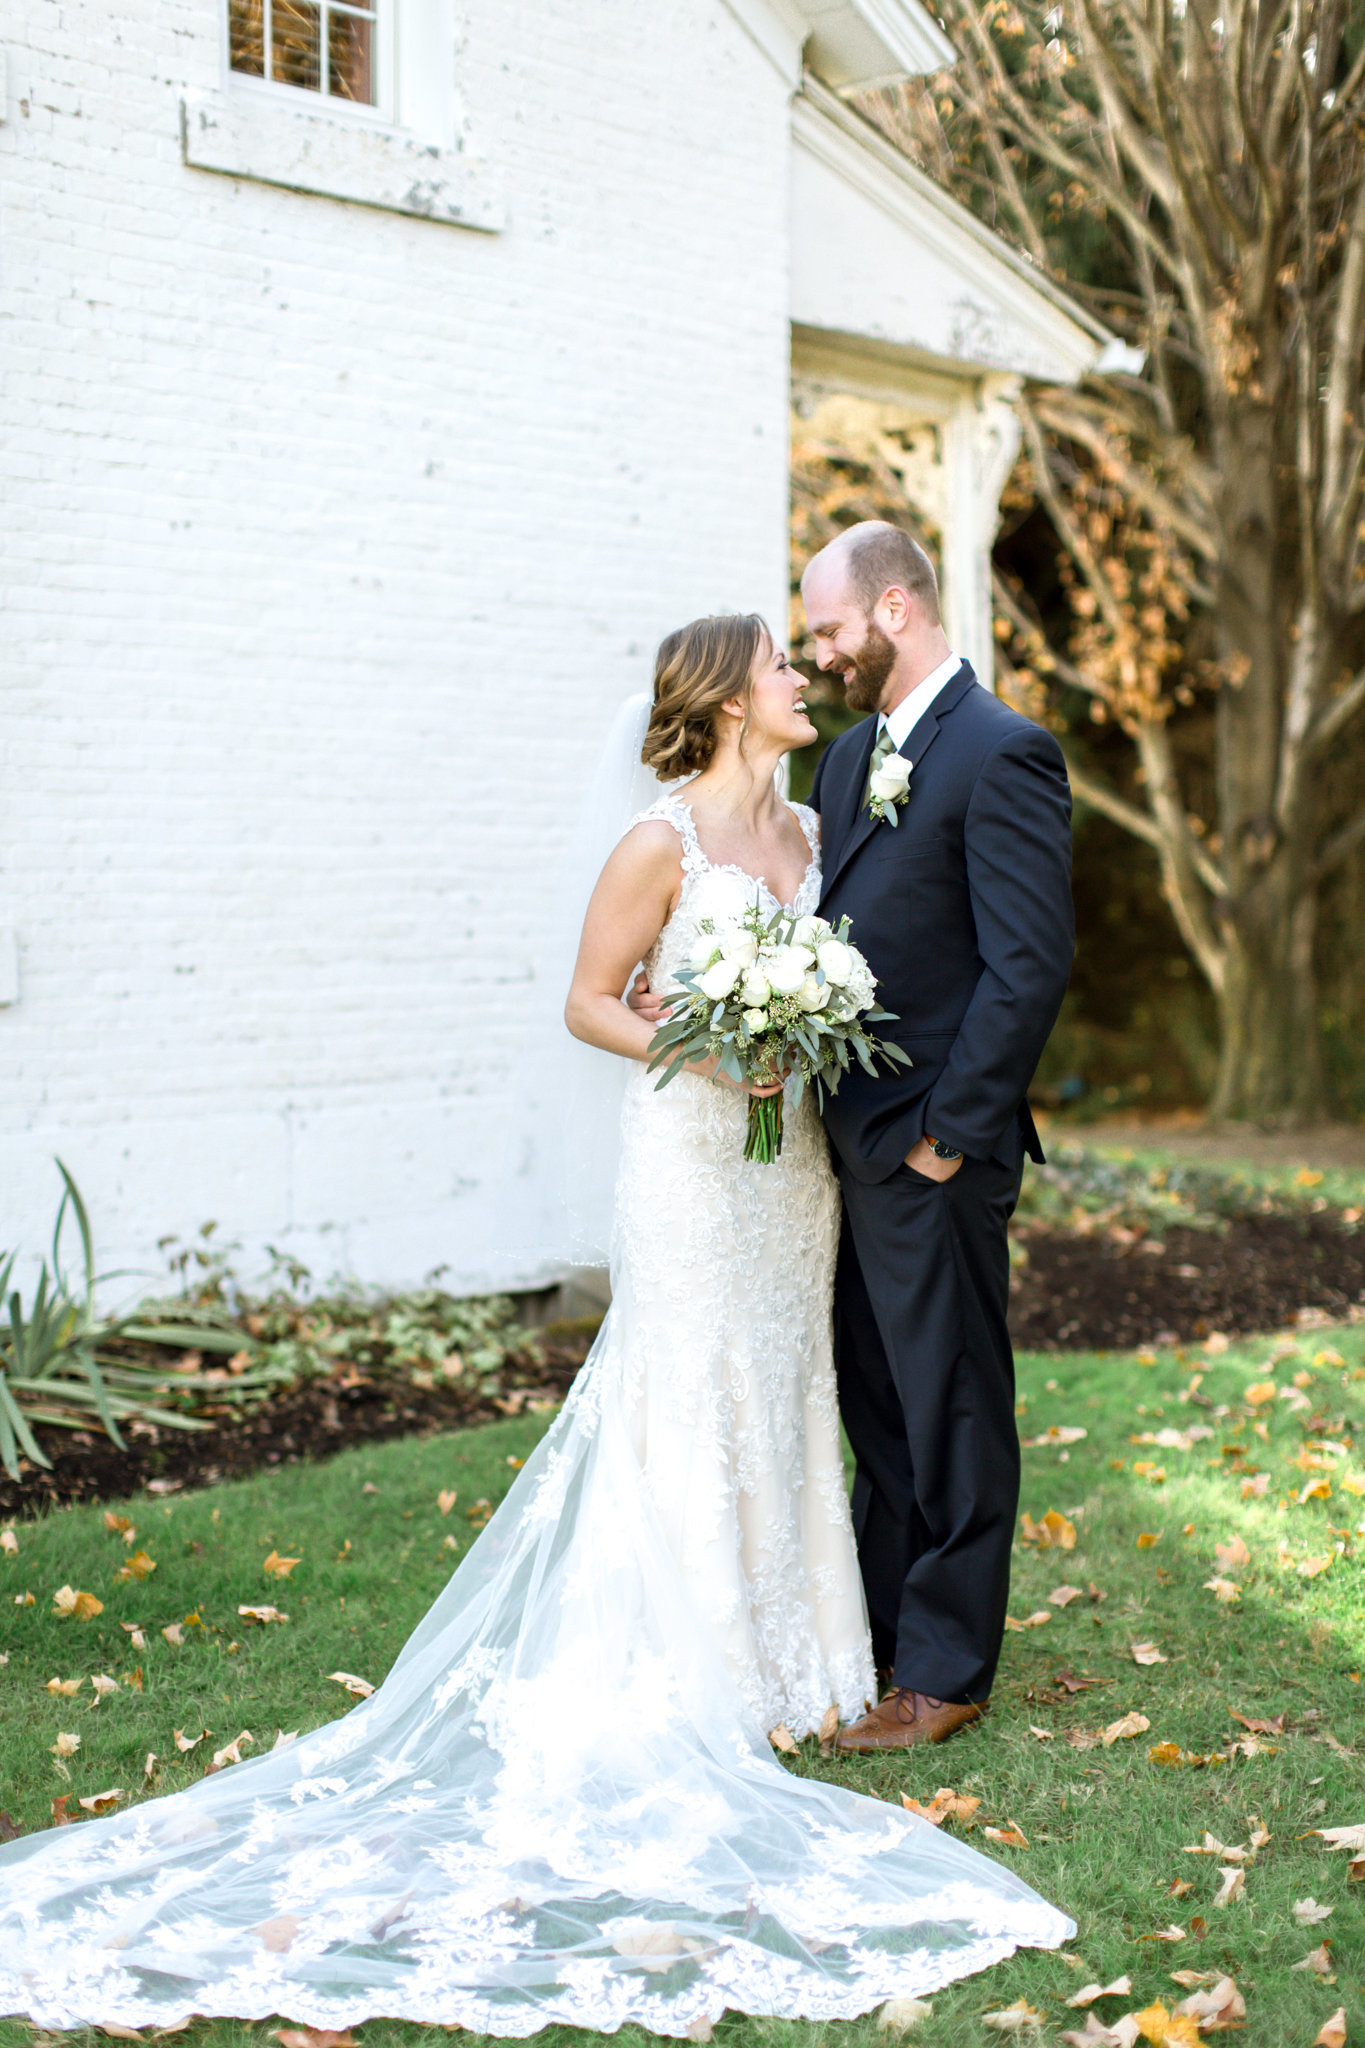 cleveland wedding photographers Austin and rachel -6853